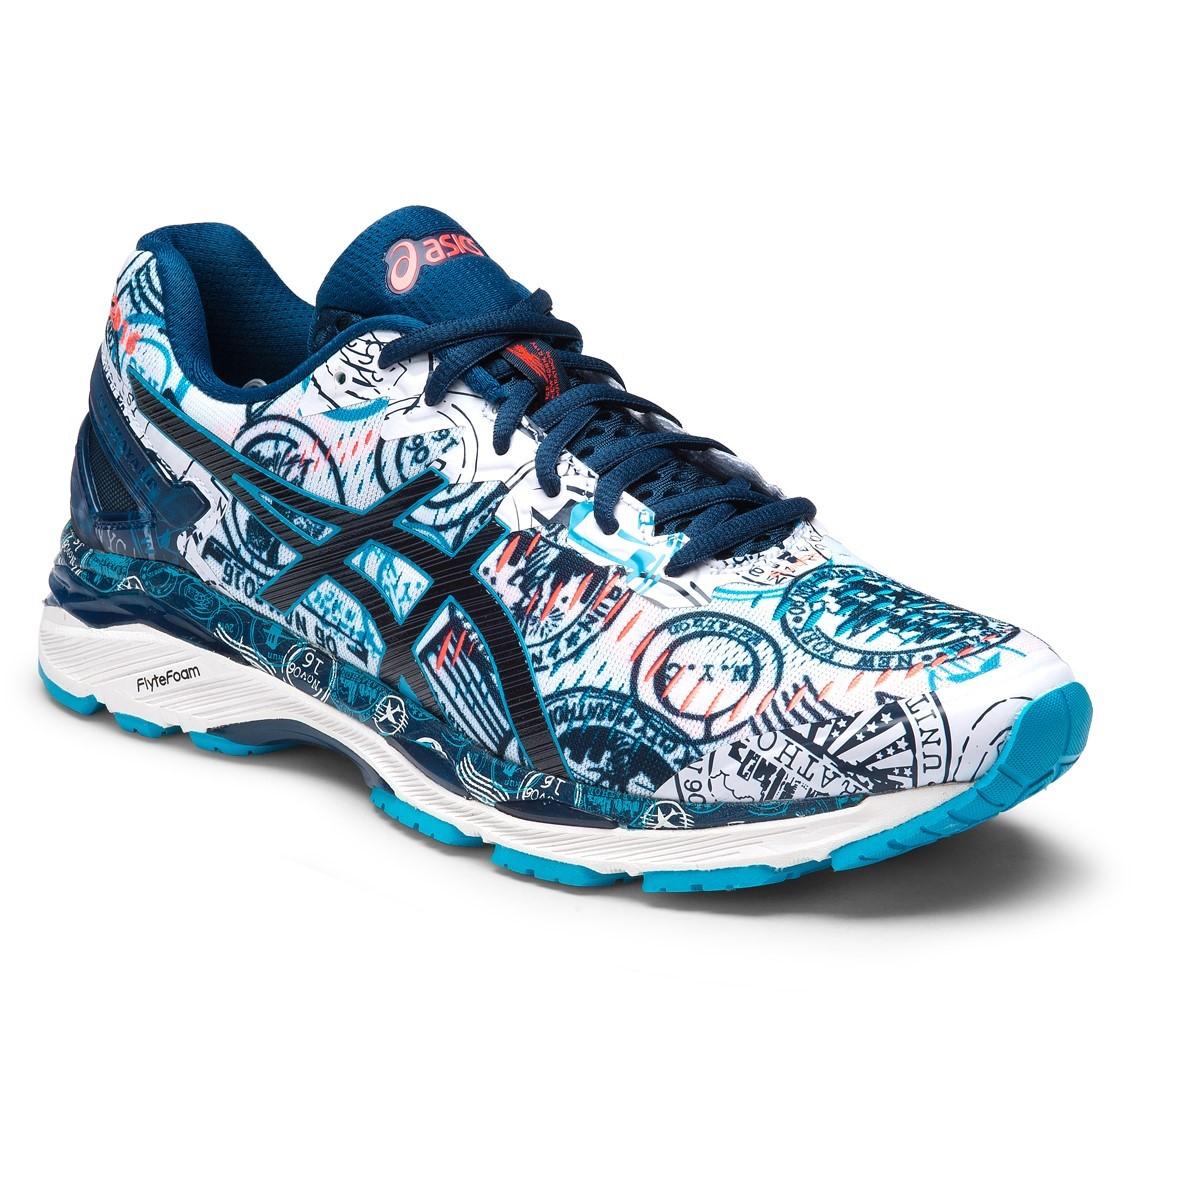 asics gel kayano 23 nyc limited edition mens running. Black Bedroom Furniture Sets. Home Design Ideas